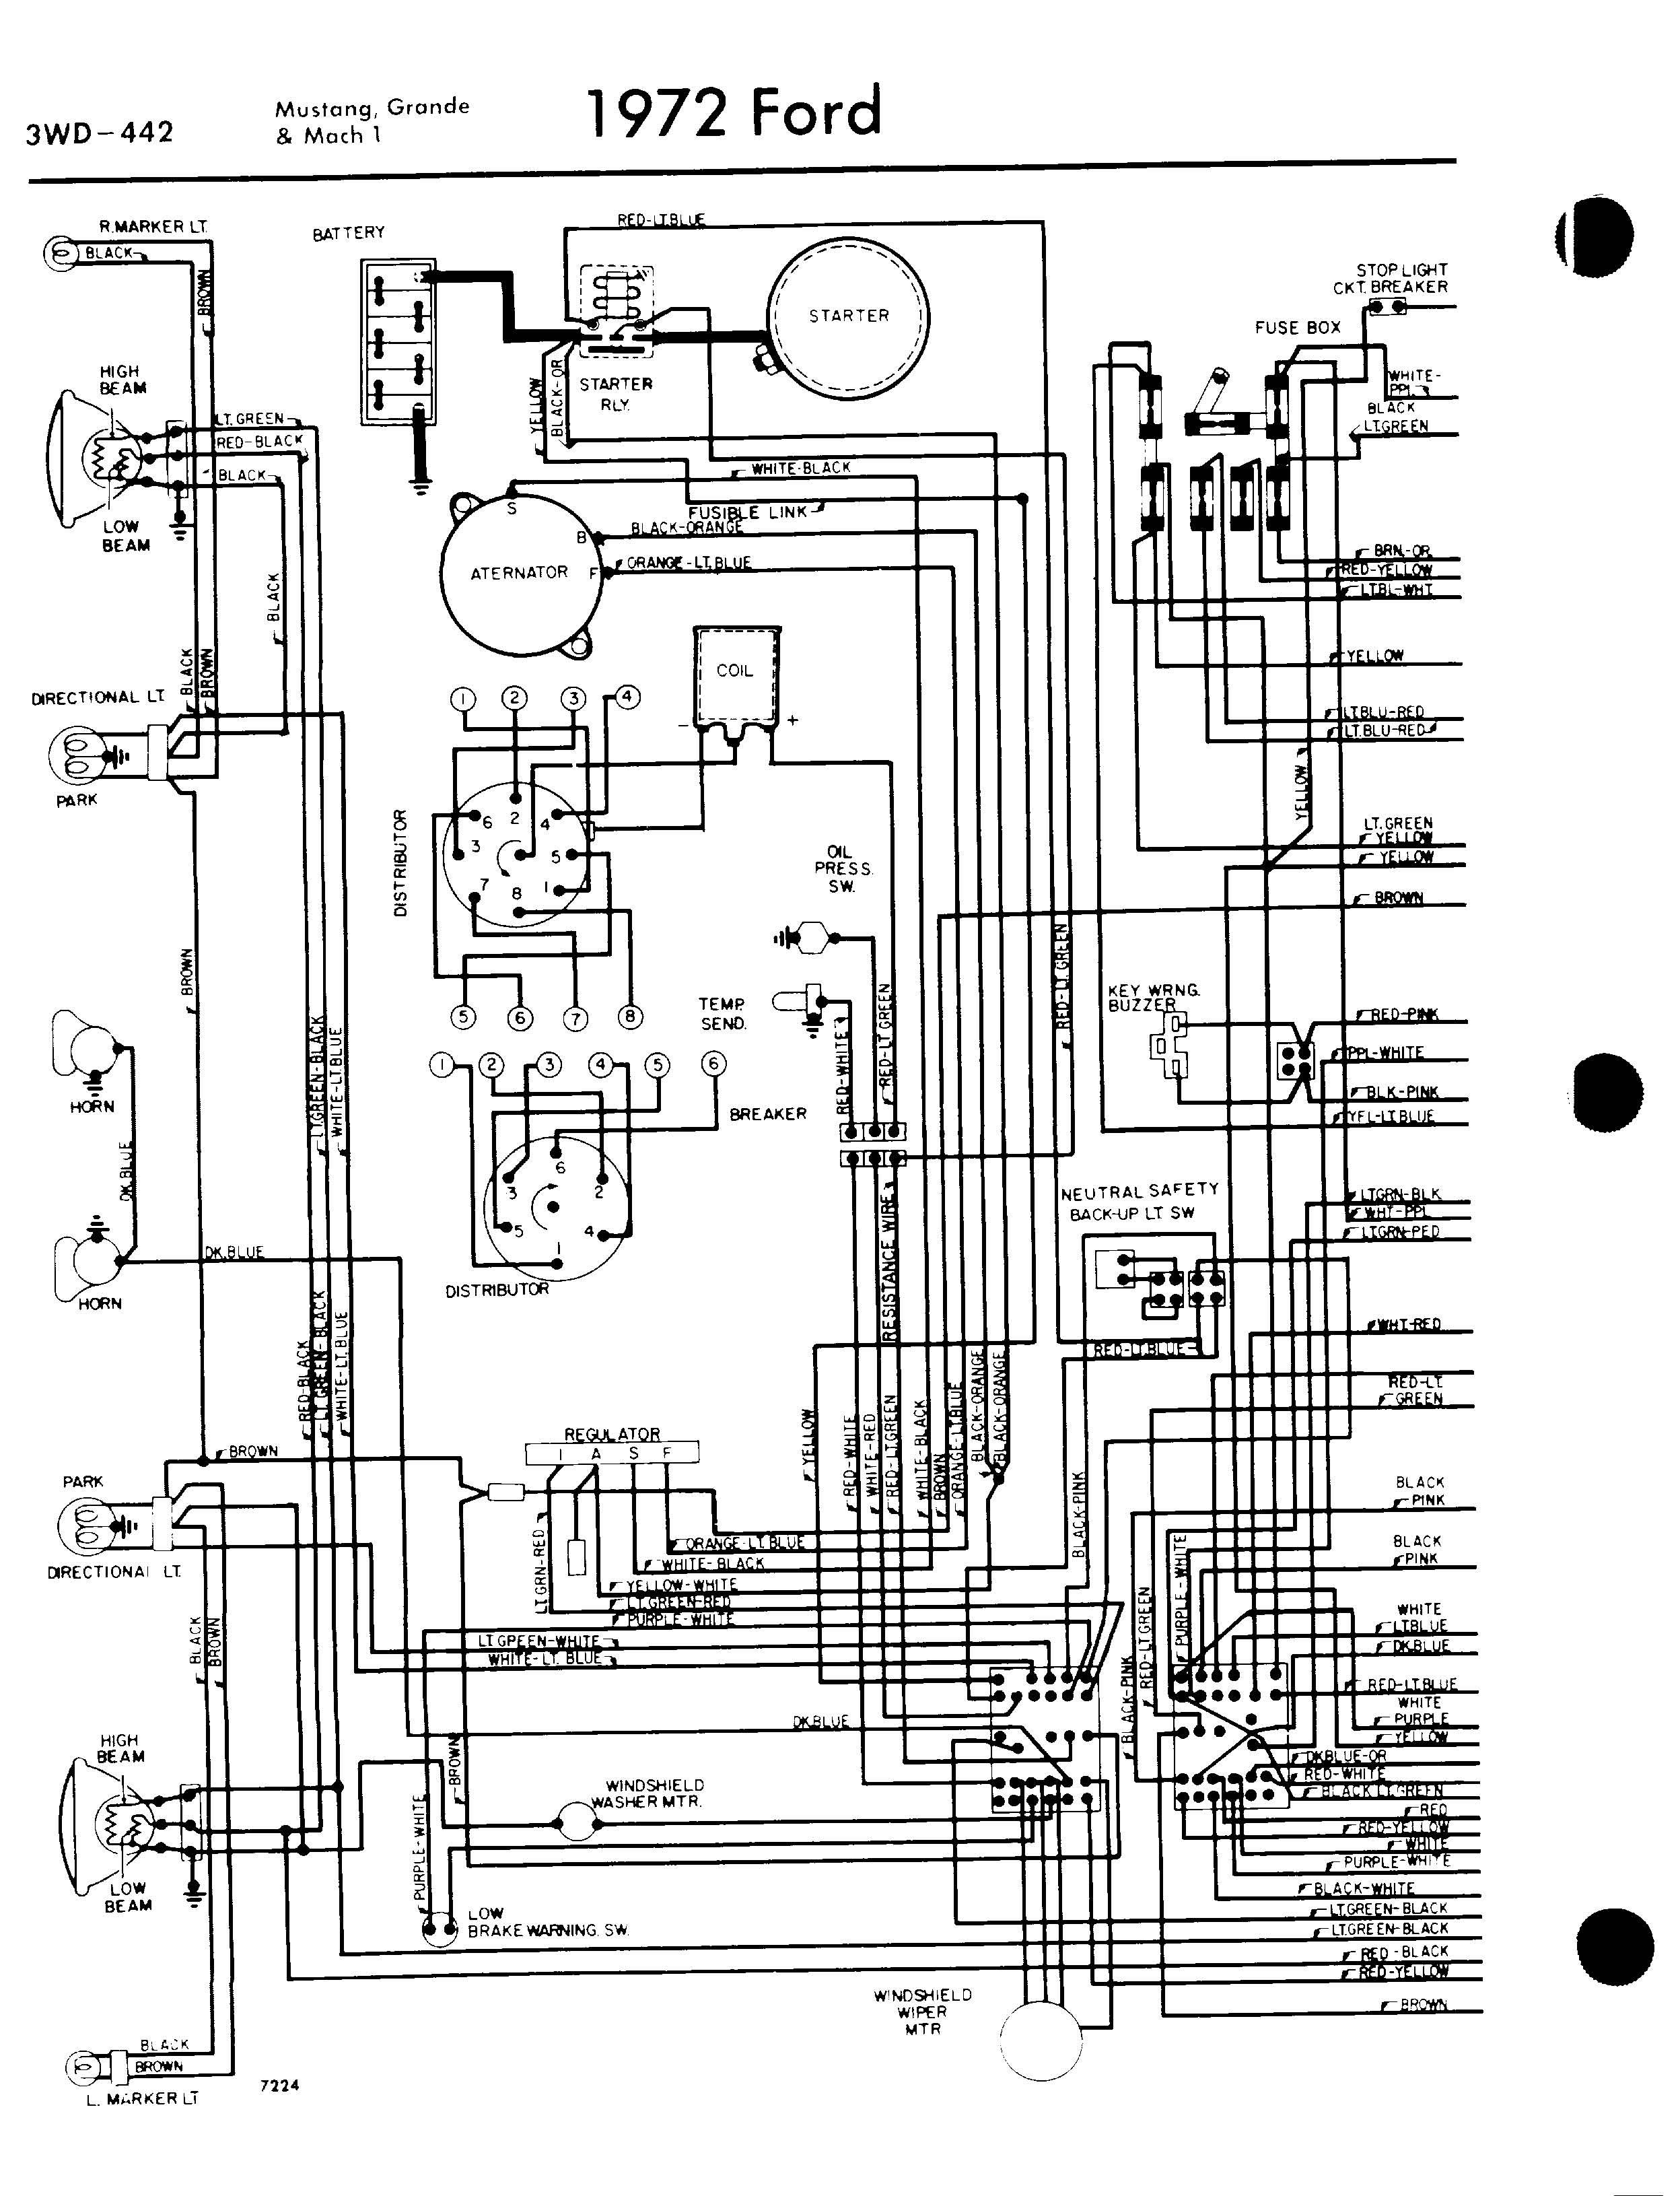 1972 ford mustang engine wiring diagram wiring diagrams scematic 66 mustang alternator wiring diagram 1970 ford [ 2496 x 3262 Pixel ]